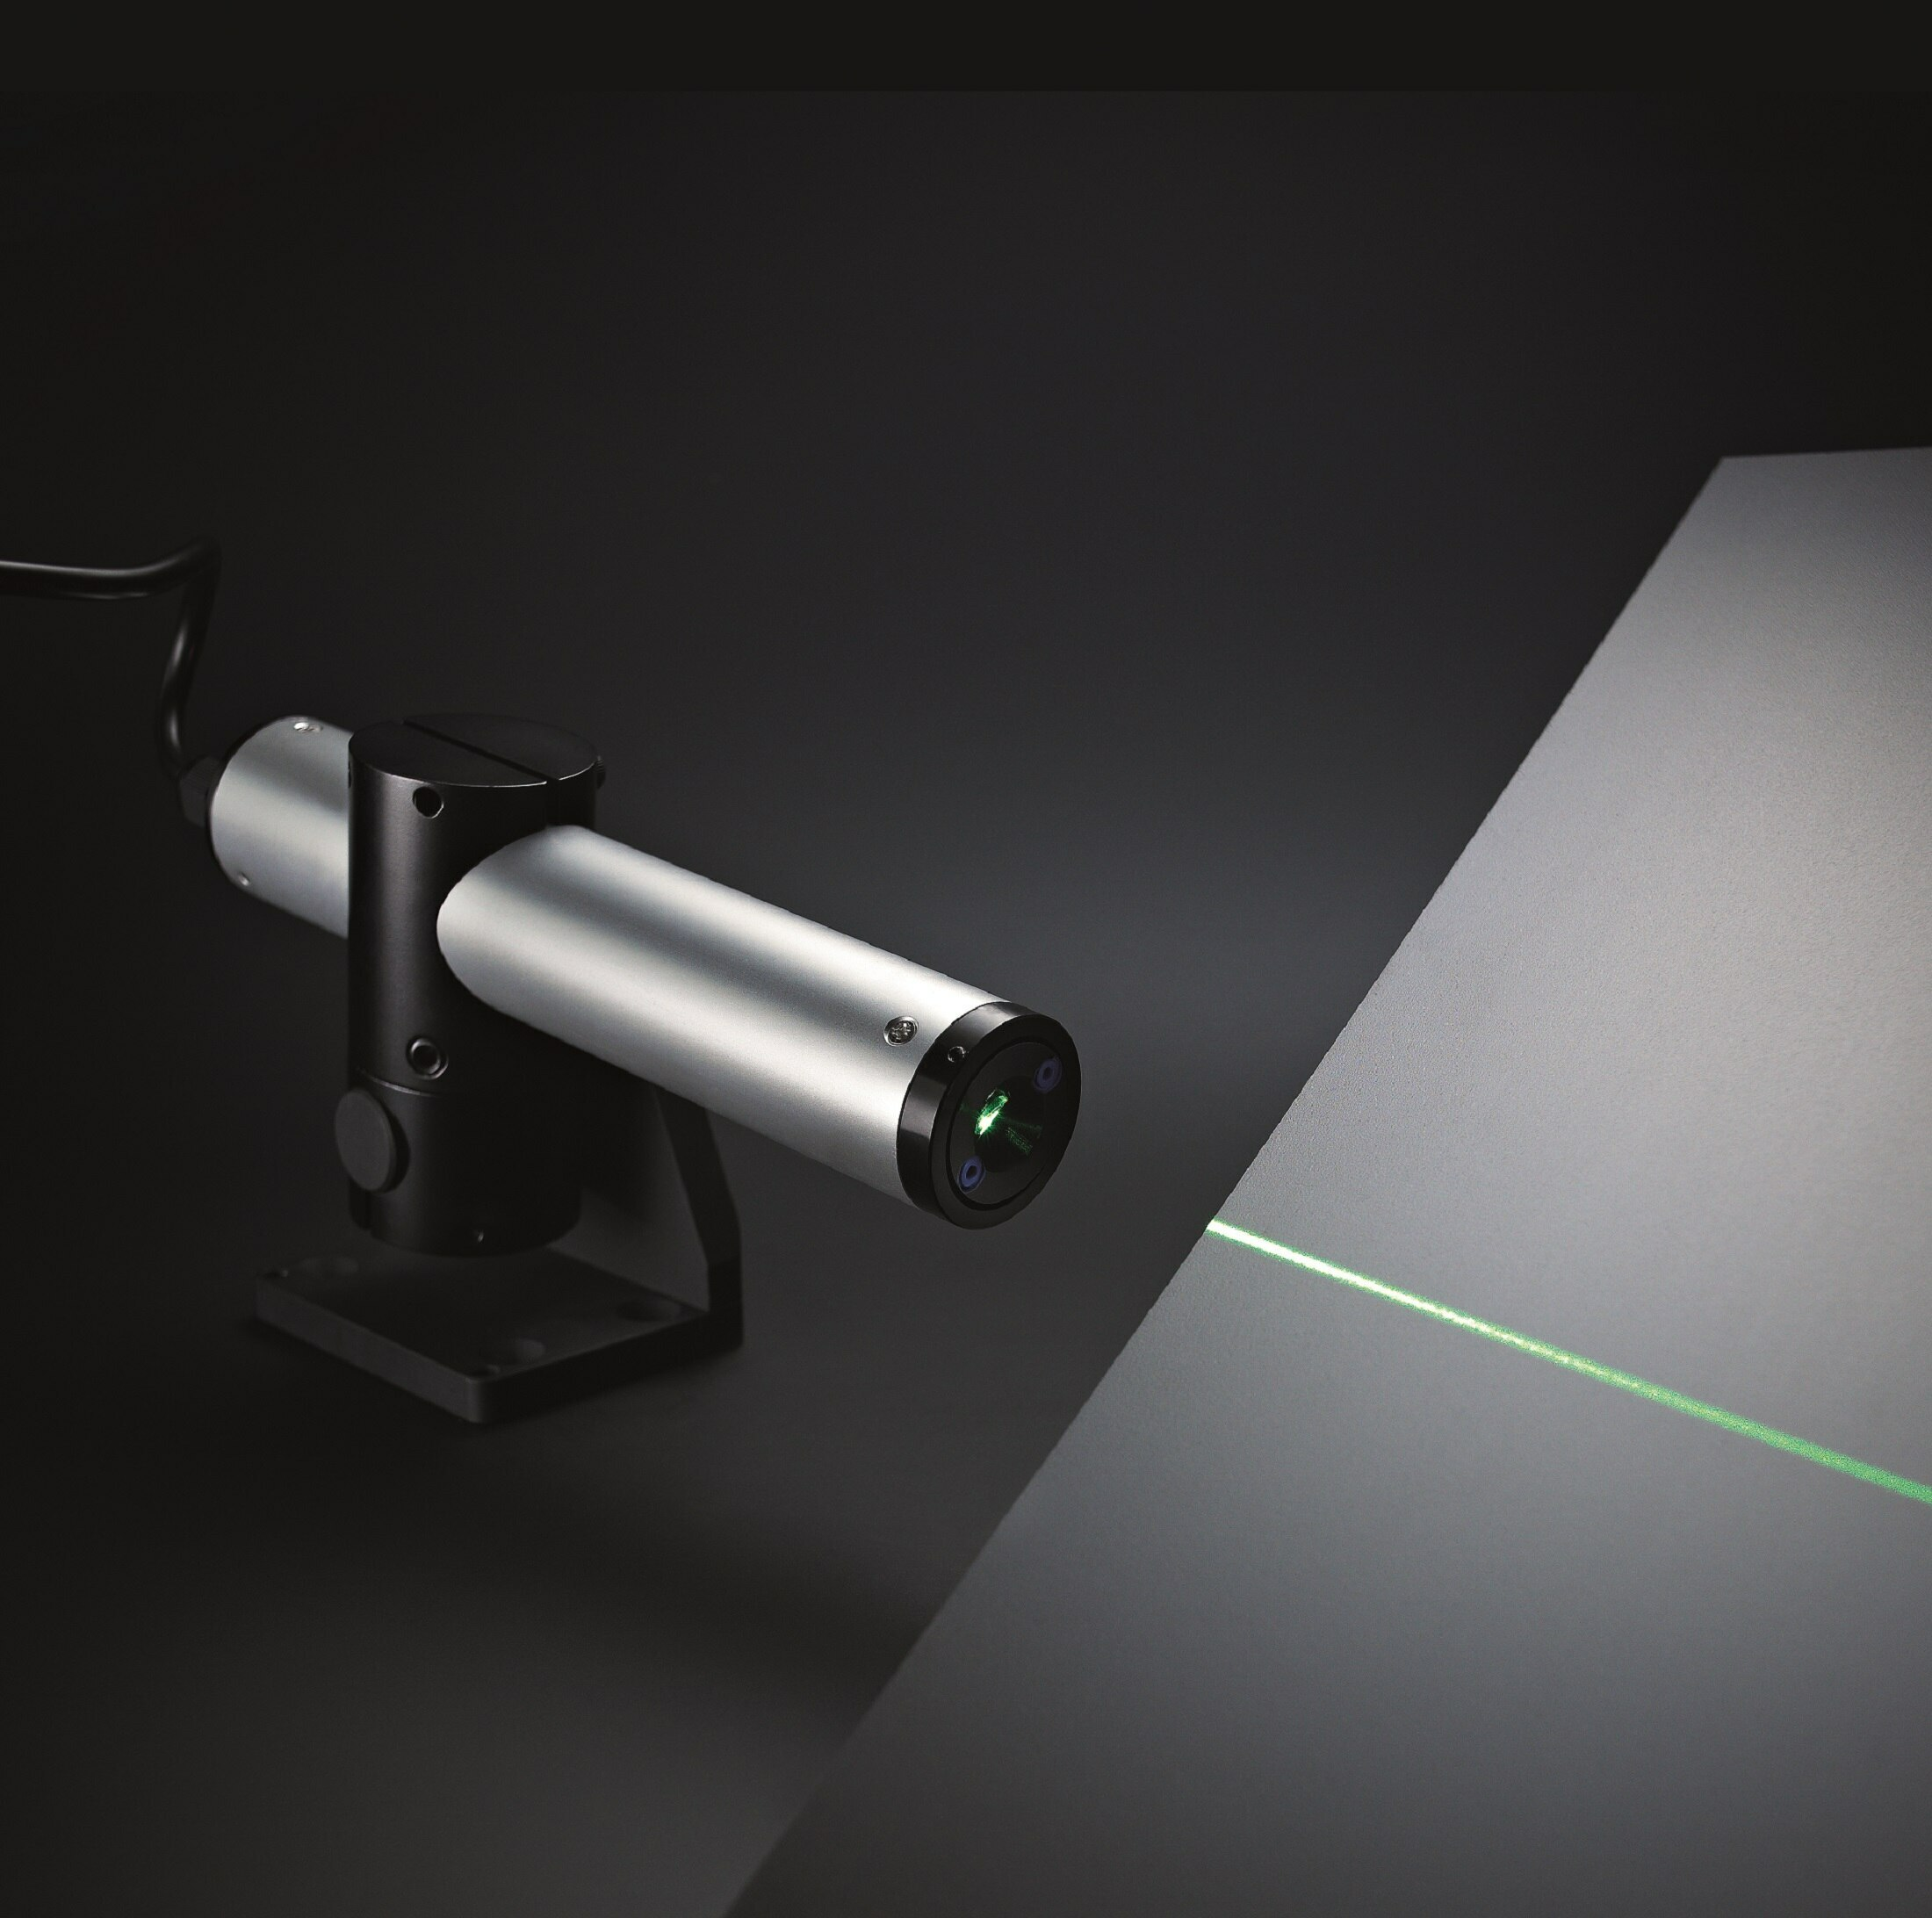 https://media.picotronic.de/products/ds_picture/lightbox/GS_linienlaser_composing_strahl_platter_grau_2200x2200.jpg